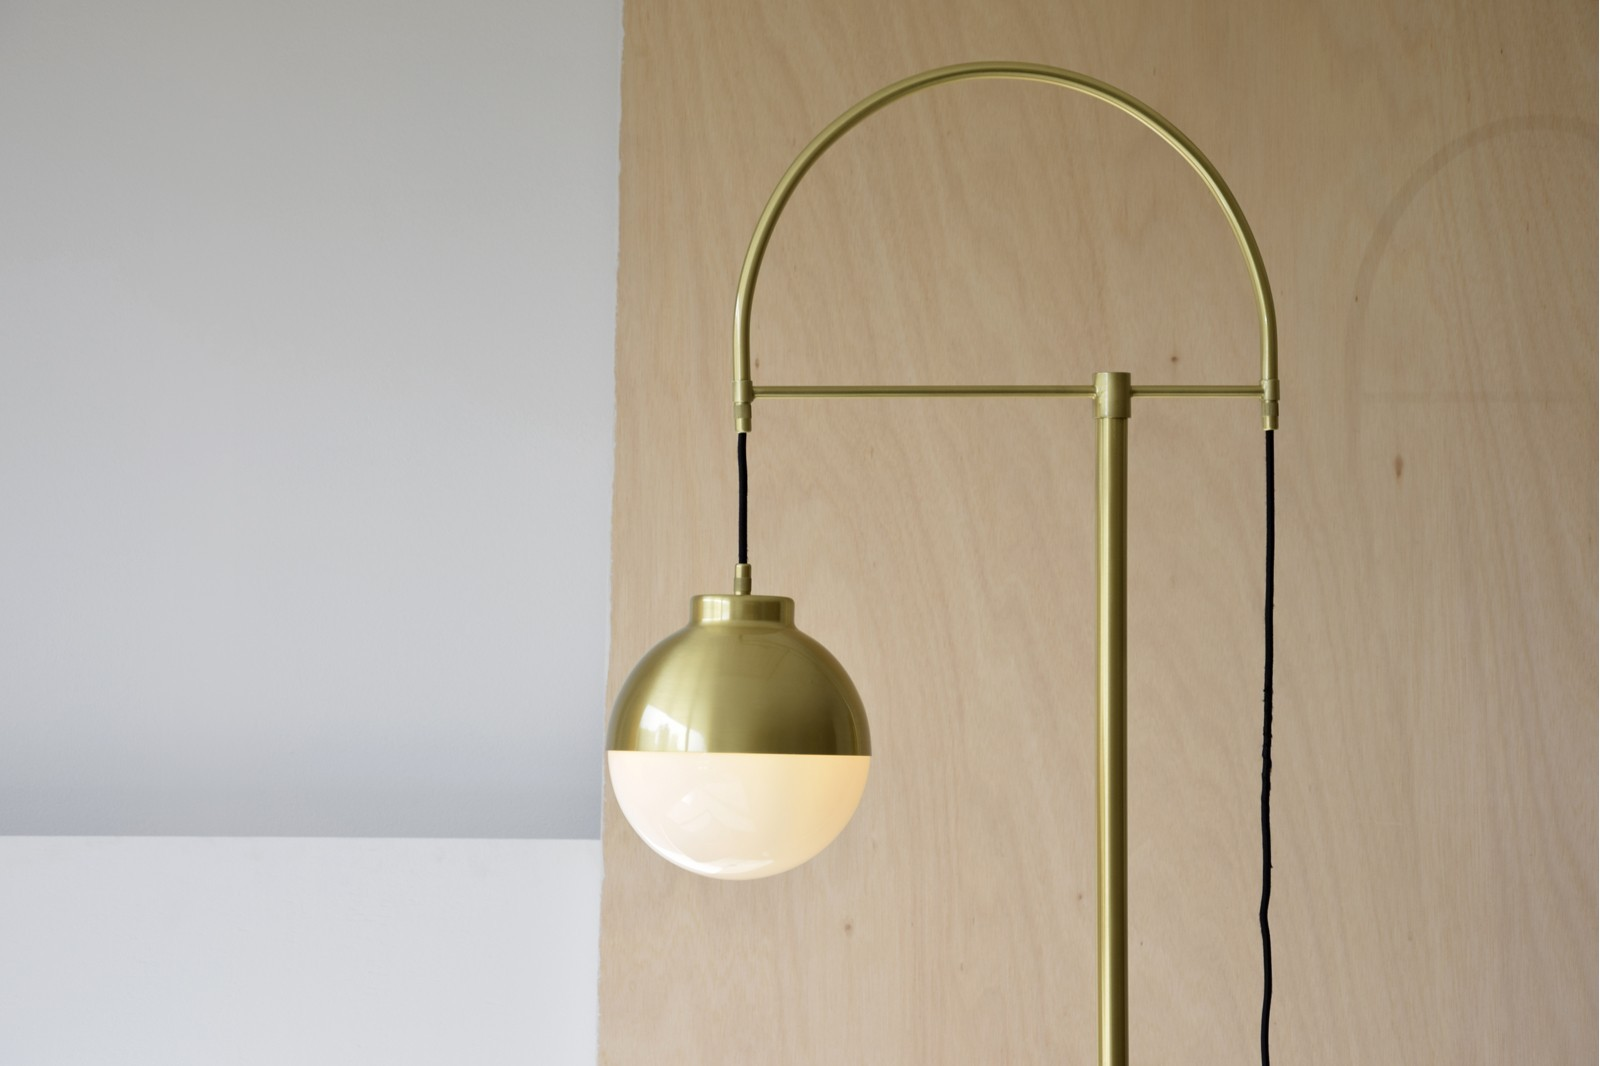 FLOOR LAMP AGARIMO. METAL-GLASS